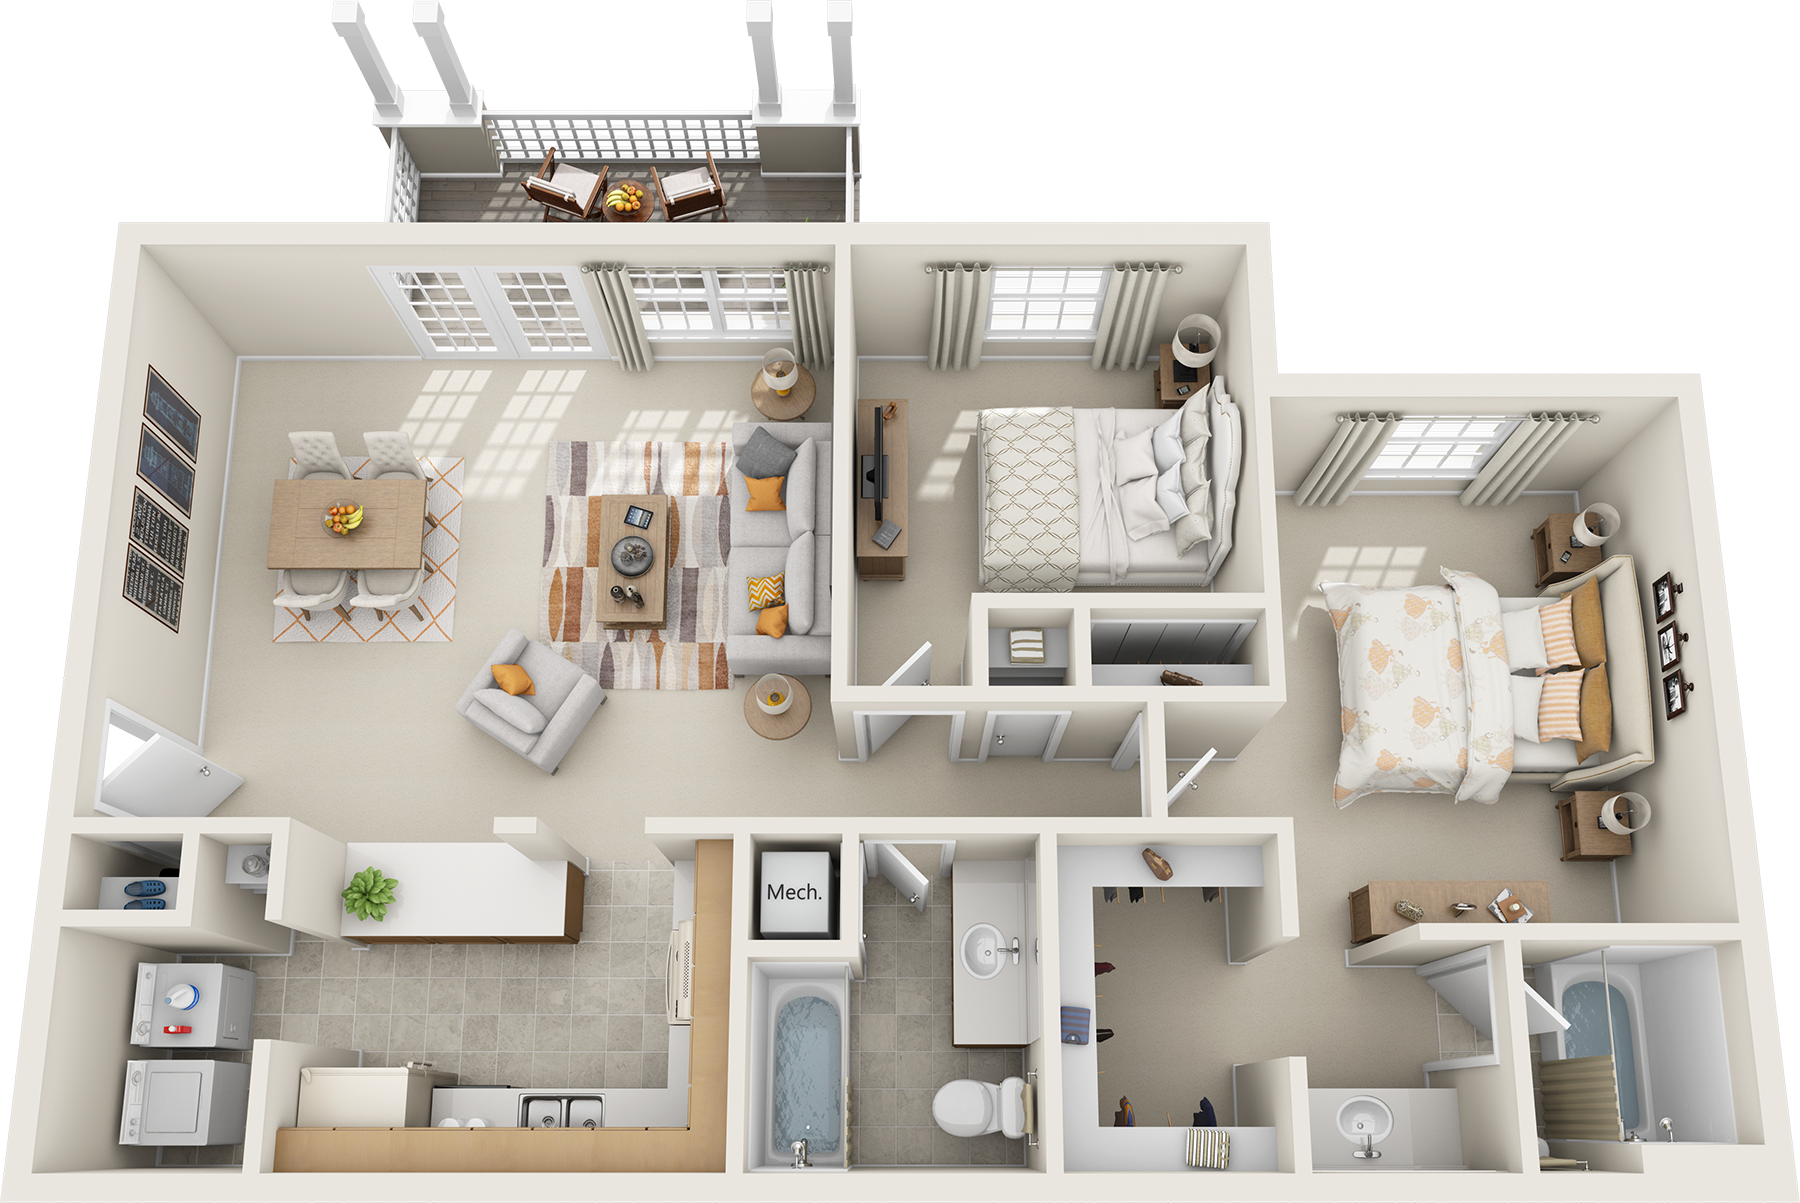 Large 1 bedroom apartment floor plans best free home for Large apartment floor plans